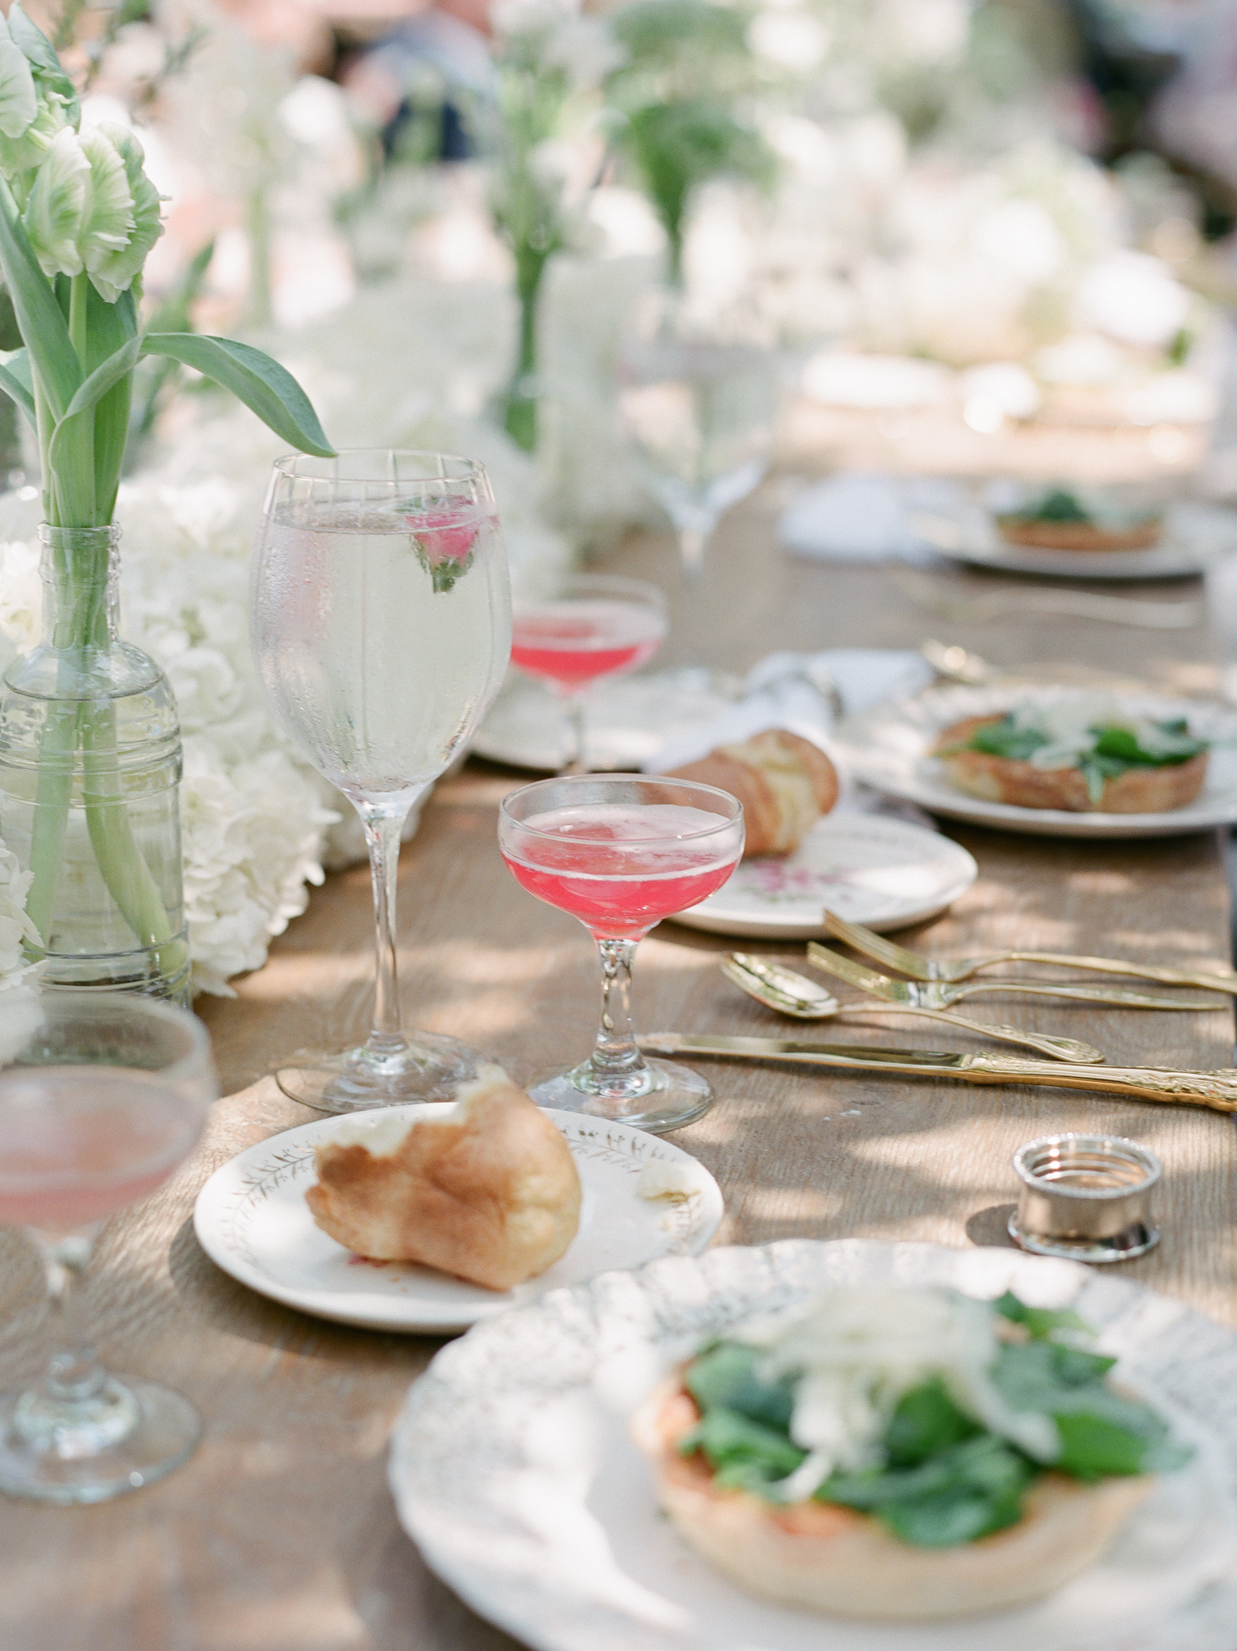 A bridal brunch gathering food at place setting